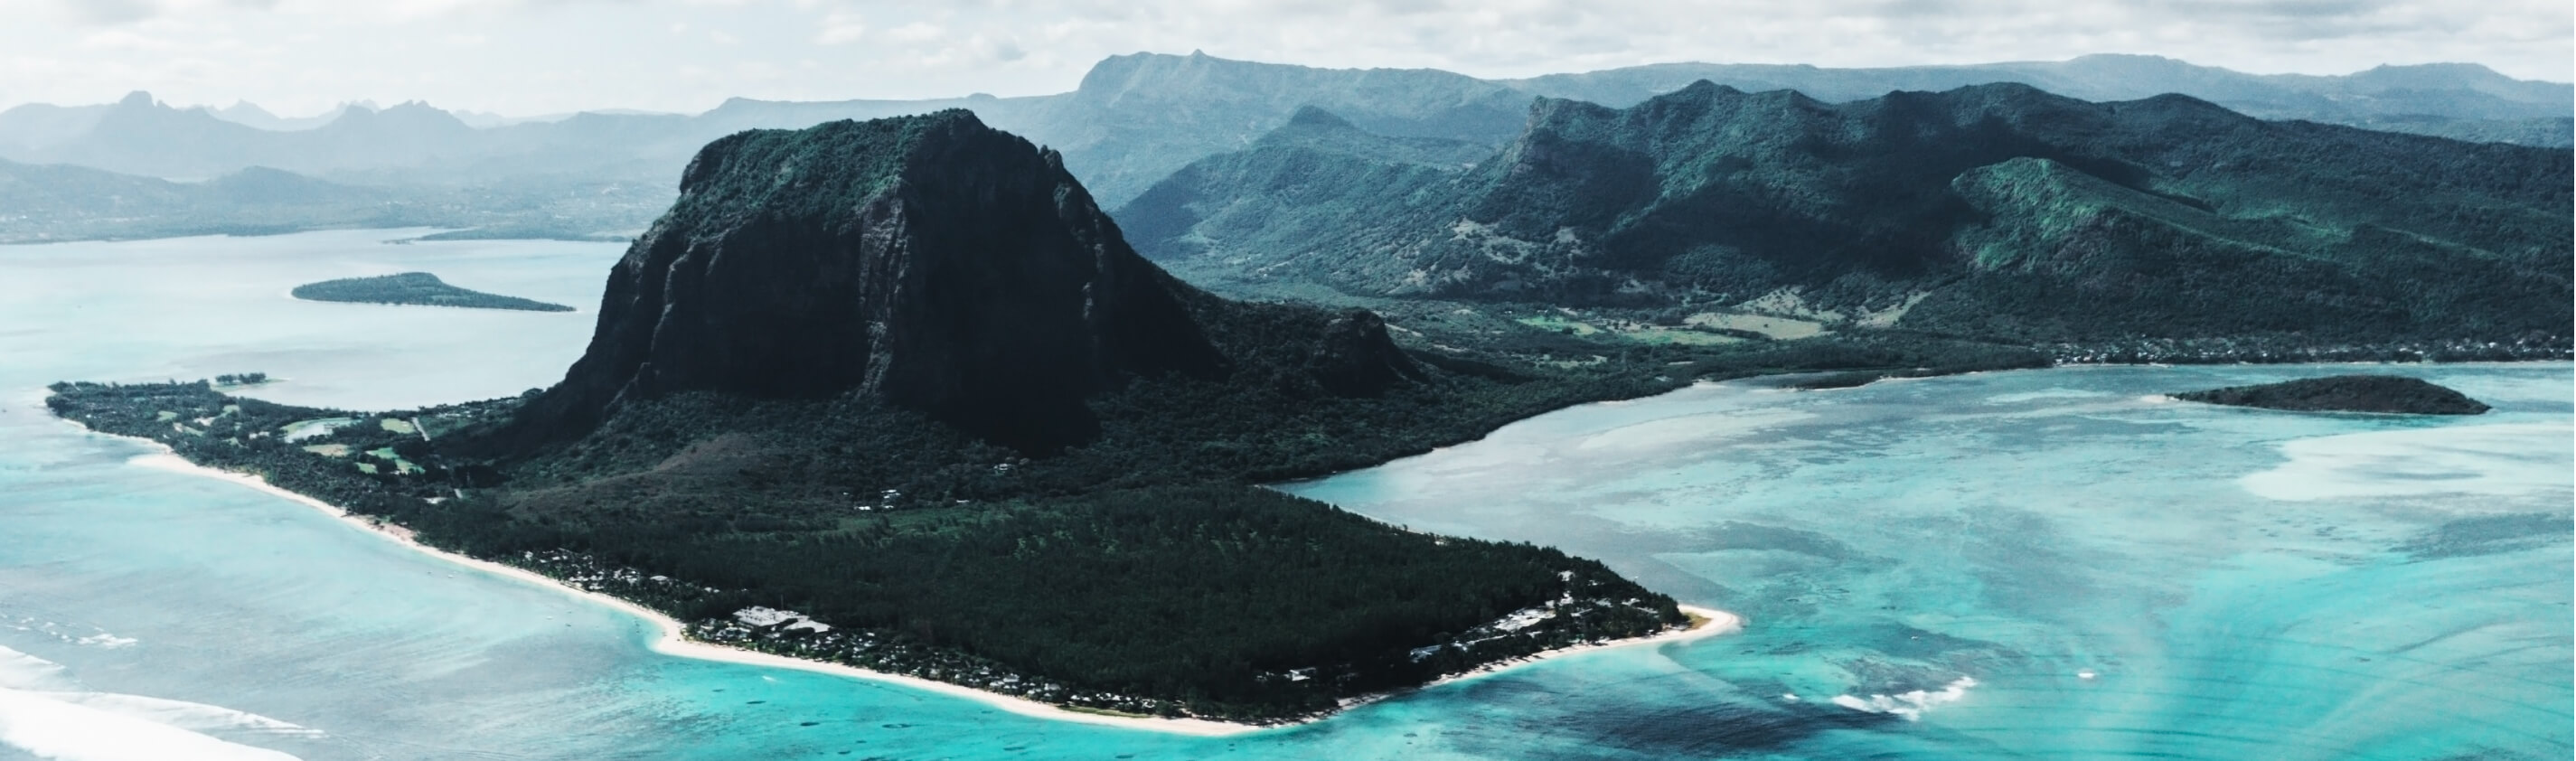 The turquoise waters of the Mauritius surround a small peninsula of land — jutting out from the low lying mainland, a densely covered mountain emerges.